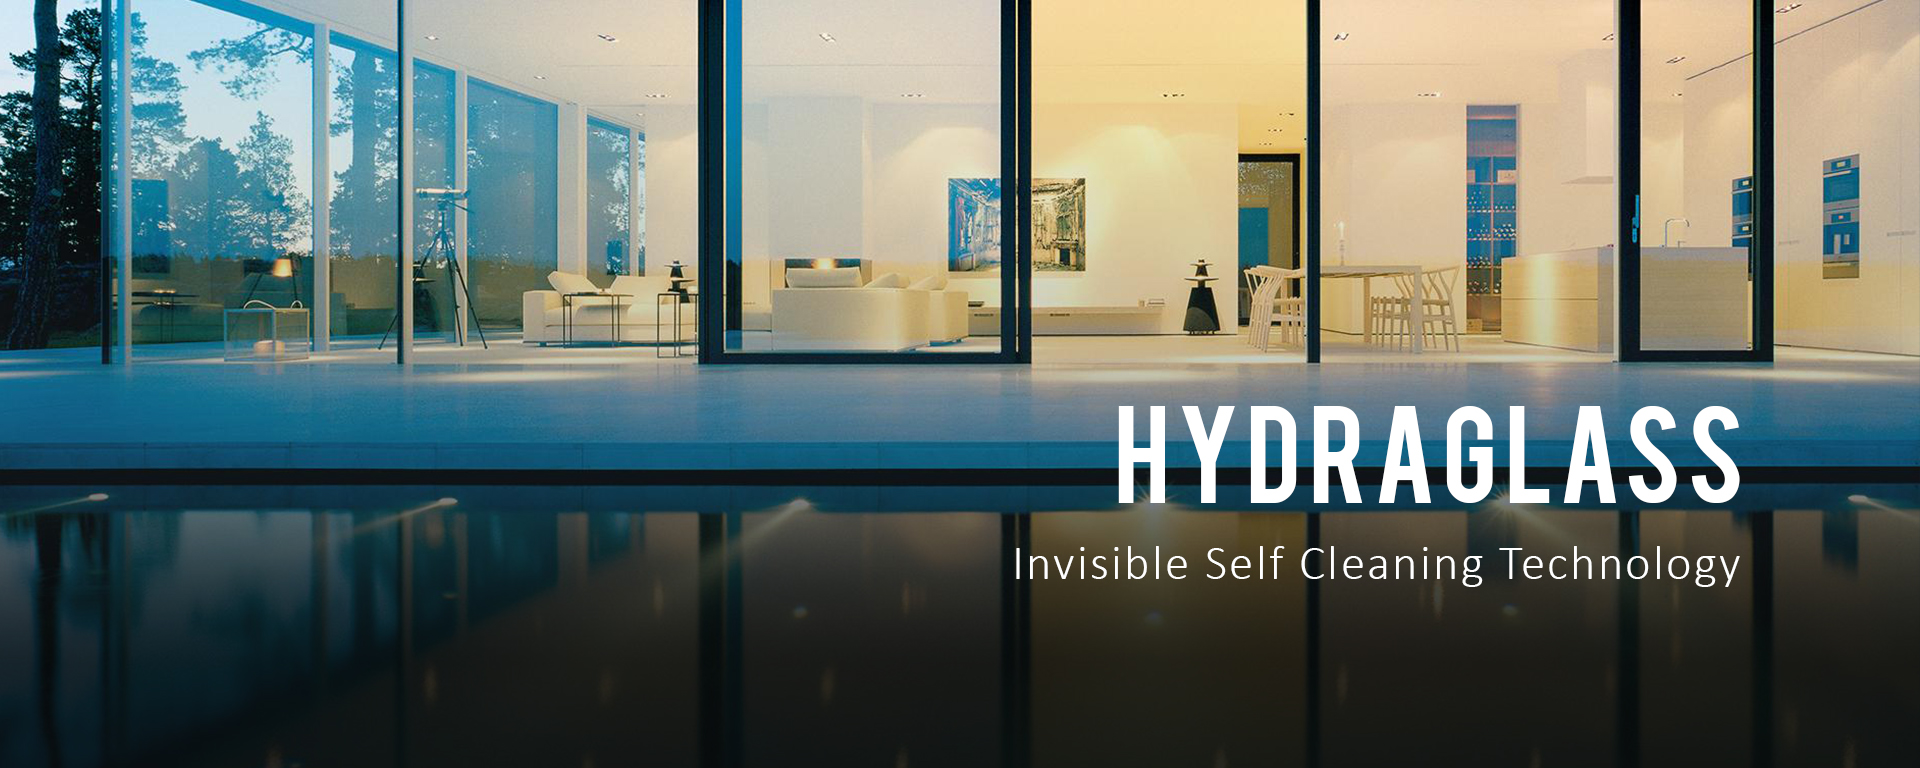 HYDRAGLASS INVISIBLE NANO COATING FOR GLASS WINDSHIELD AND SHOWER PANEL